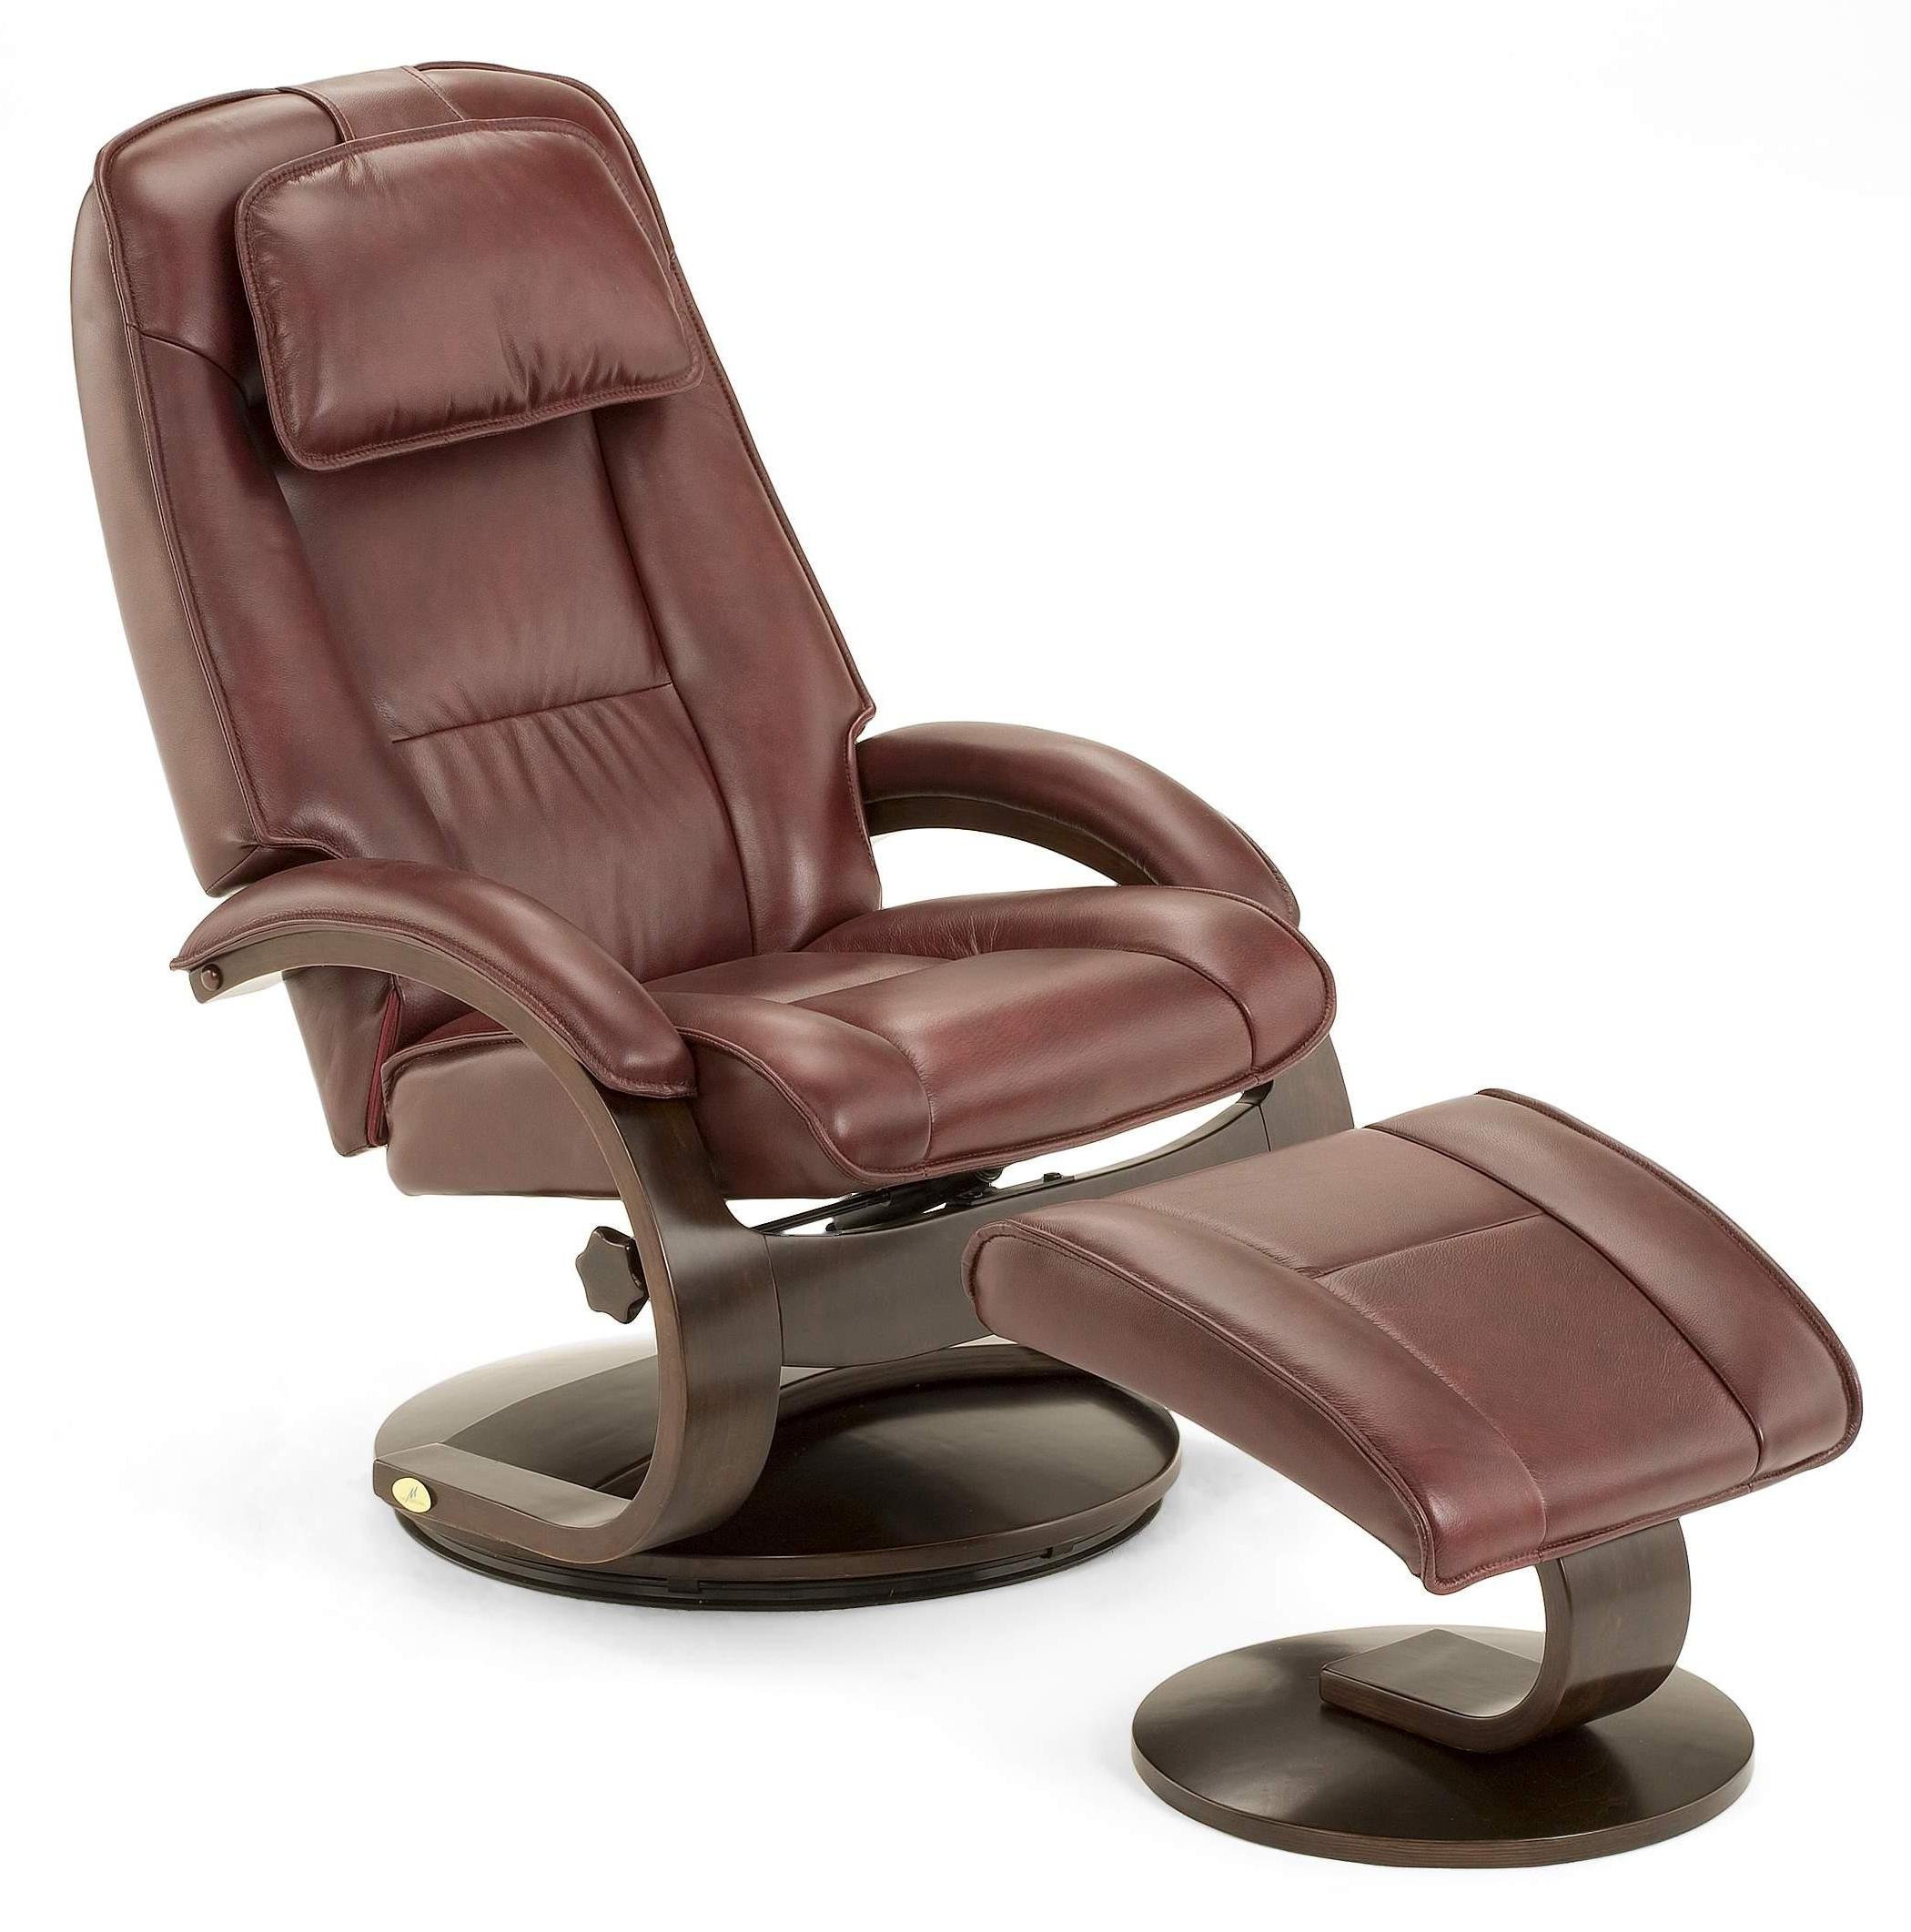 Mac Motion Chairs Mac Motion Chairs Oslo Collection Bergen Reclining Chair And